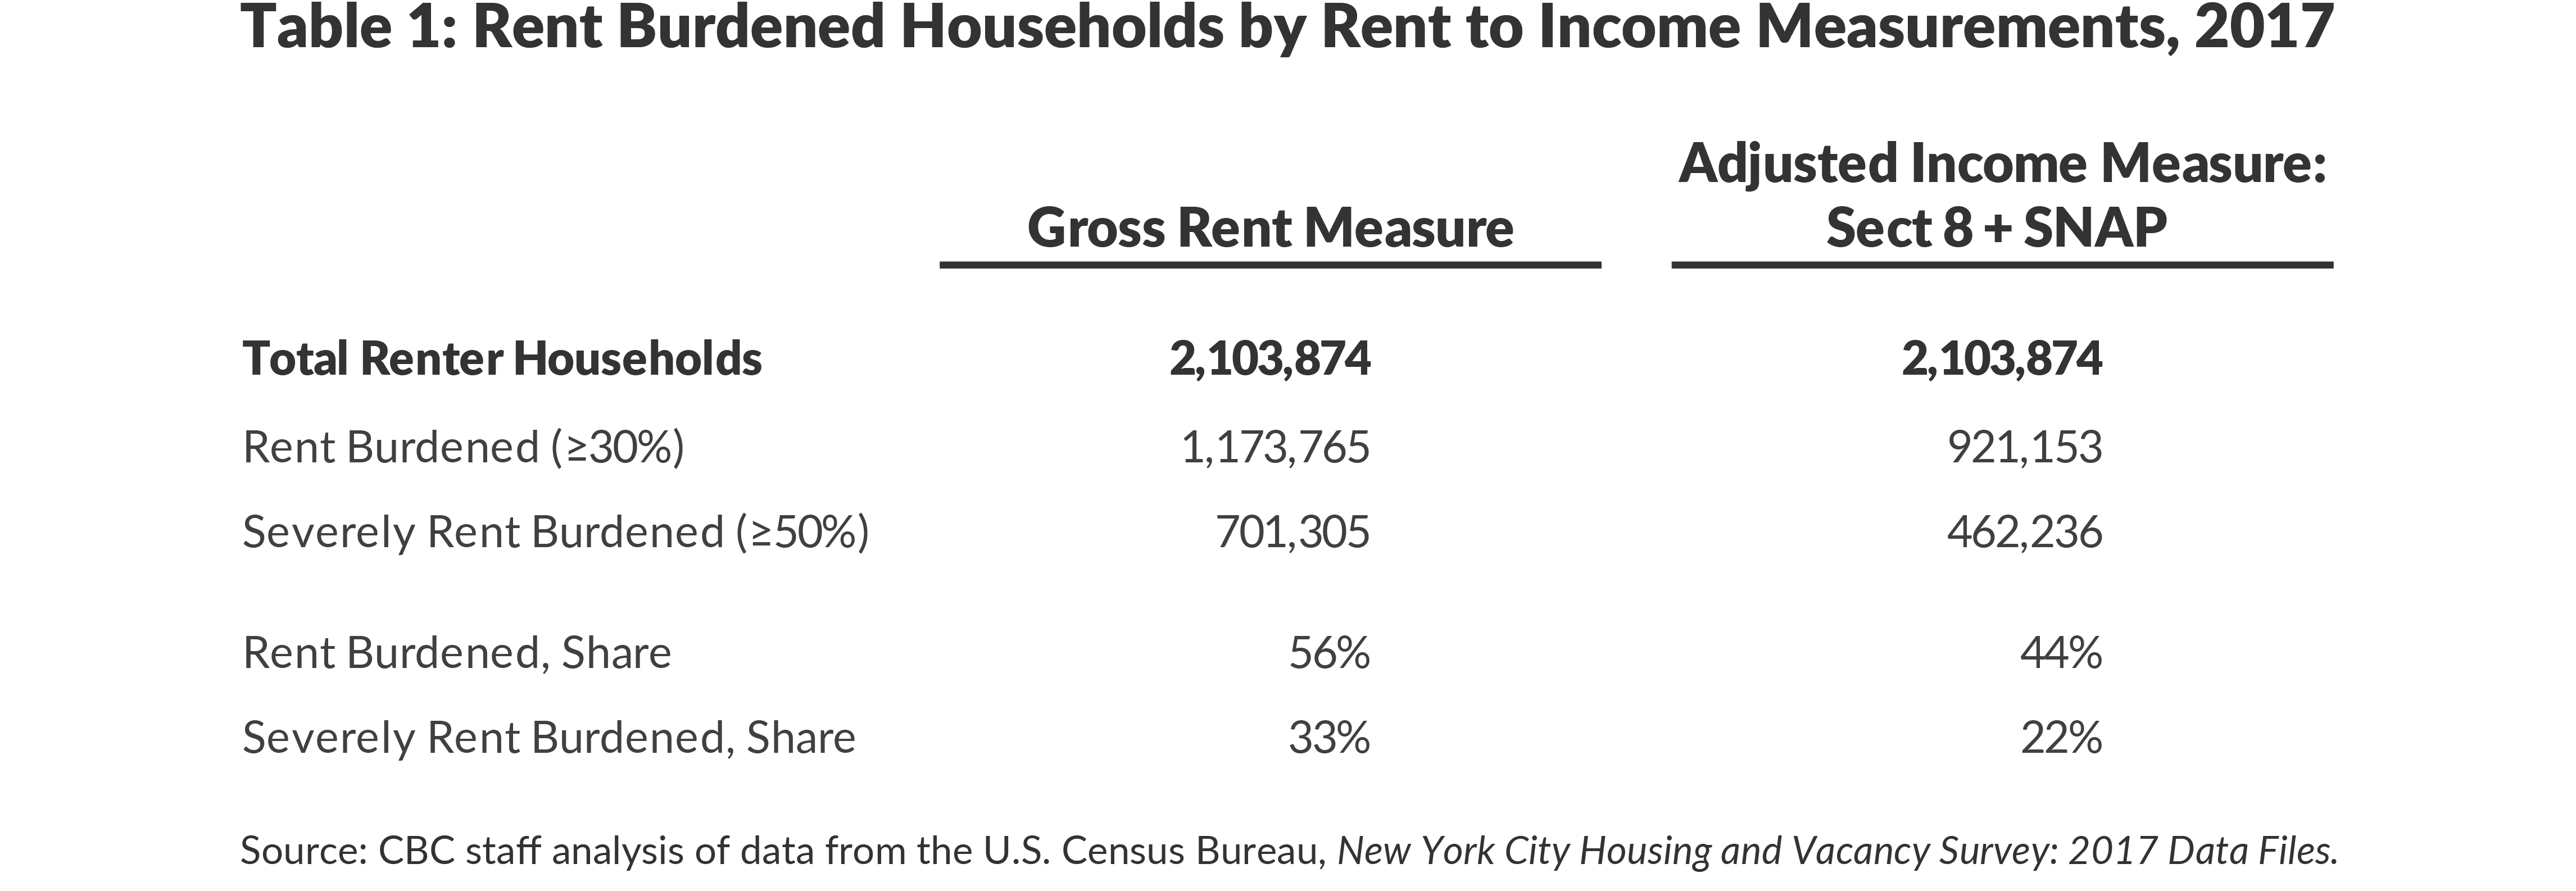 Table 1. Rent Burdened Households by Rent to Income Measurements, 2017